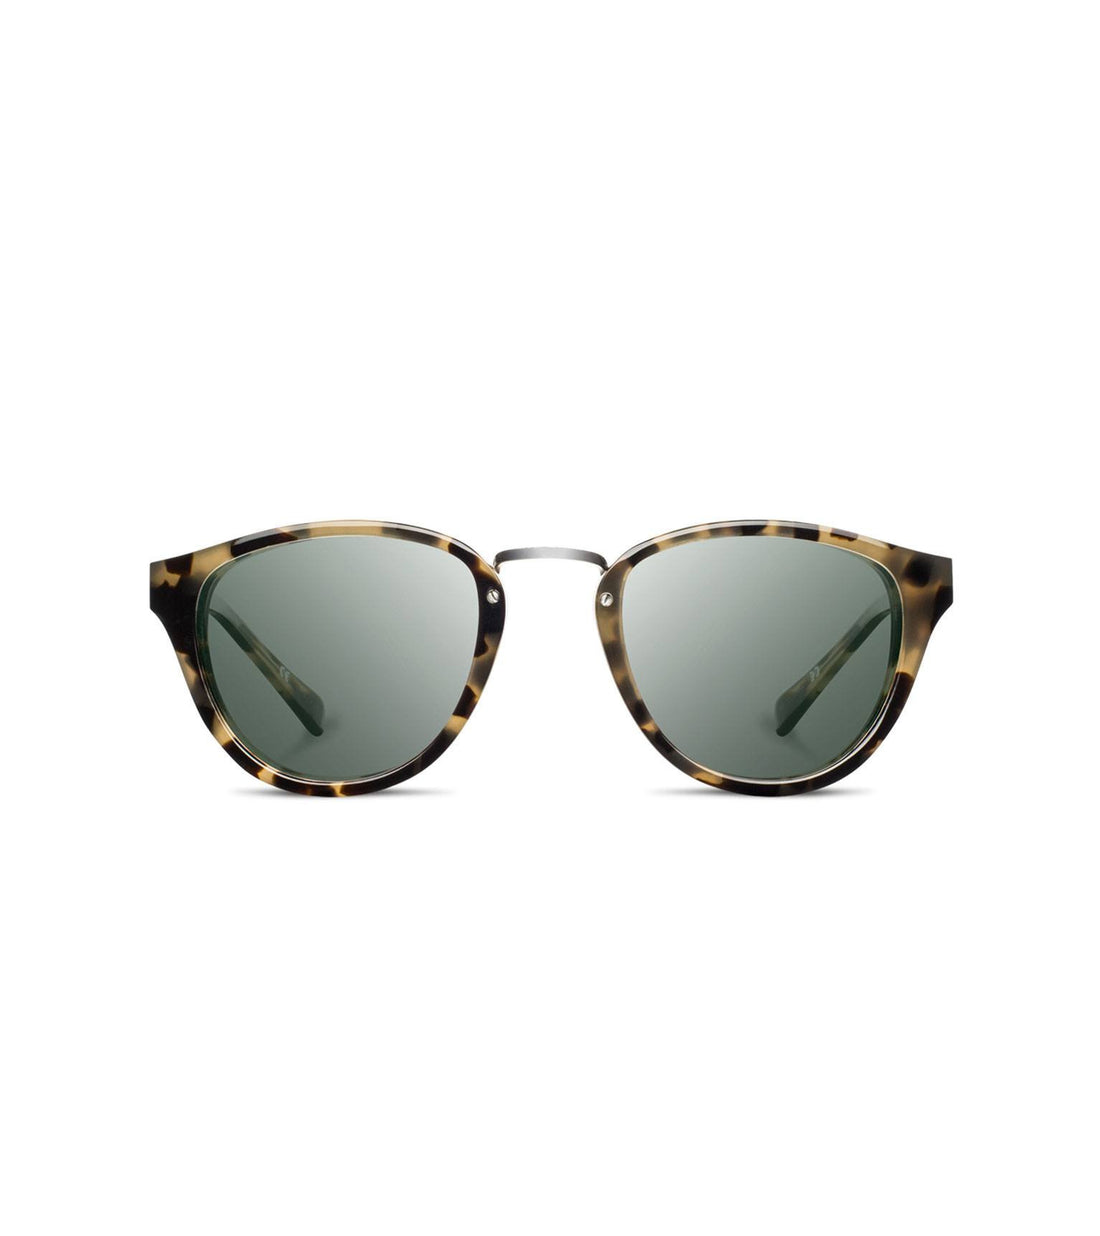 Shwood Ainsworth - Accessories: Eyewear - Iron and Resin